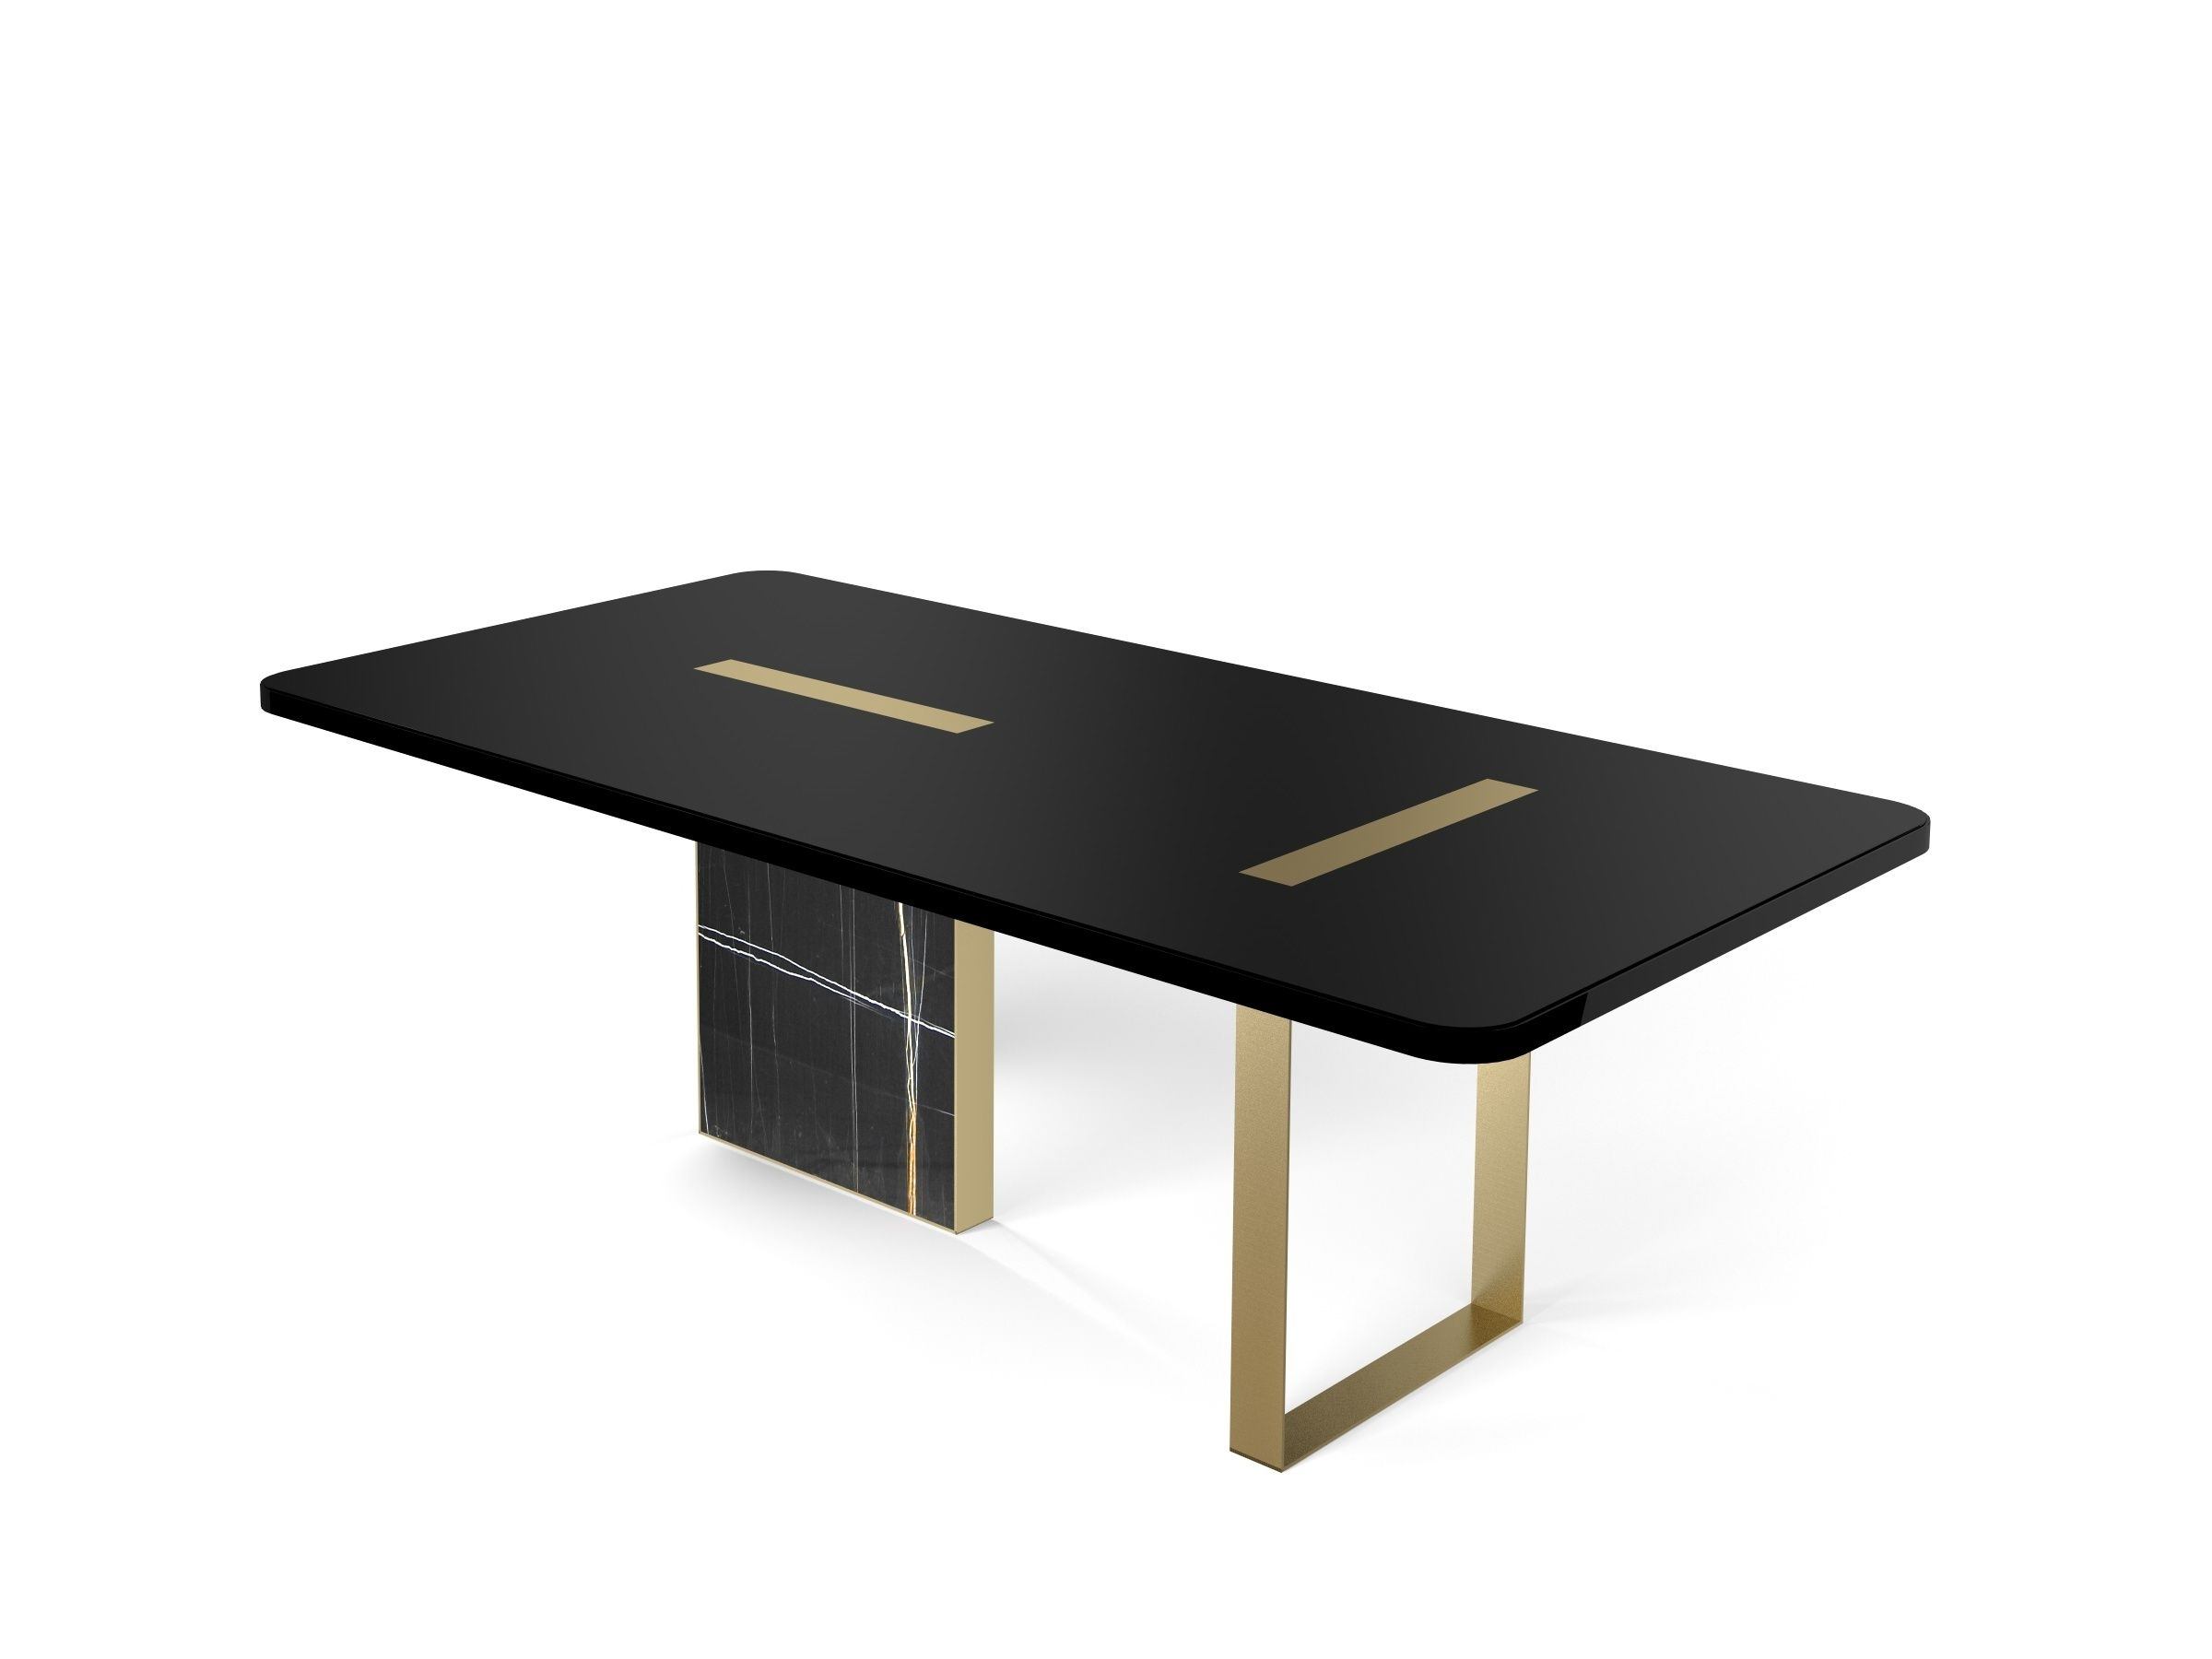 Tyron Dining Table 220X110 In Black Laquered Wood With Brushed Brass Throughout 2018 Laurent Round Dining Tables (View 25 of 25)